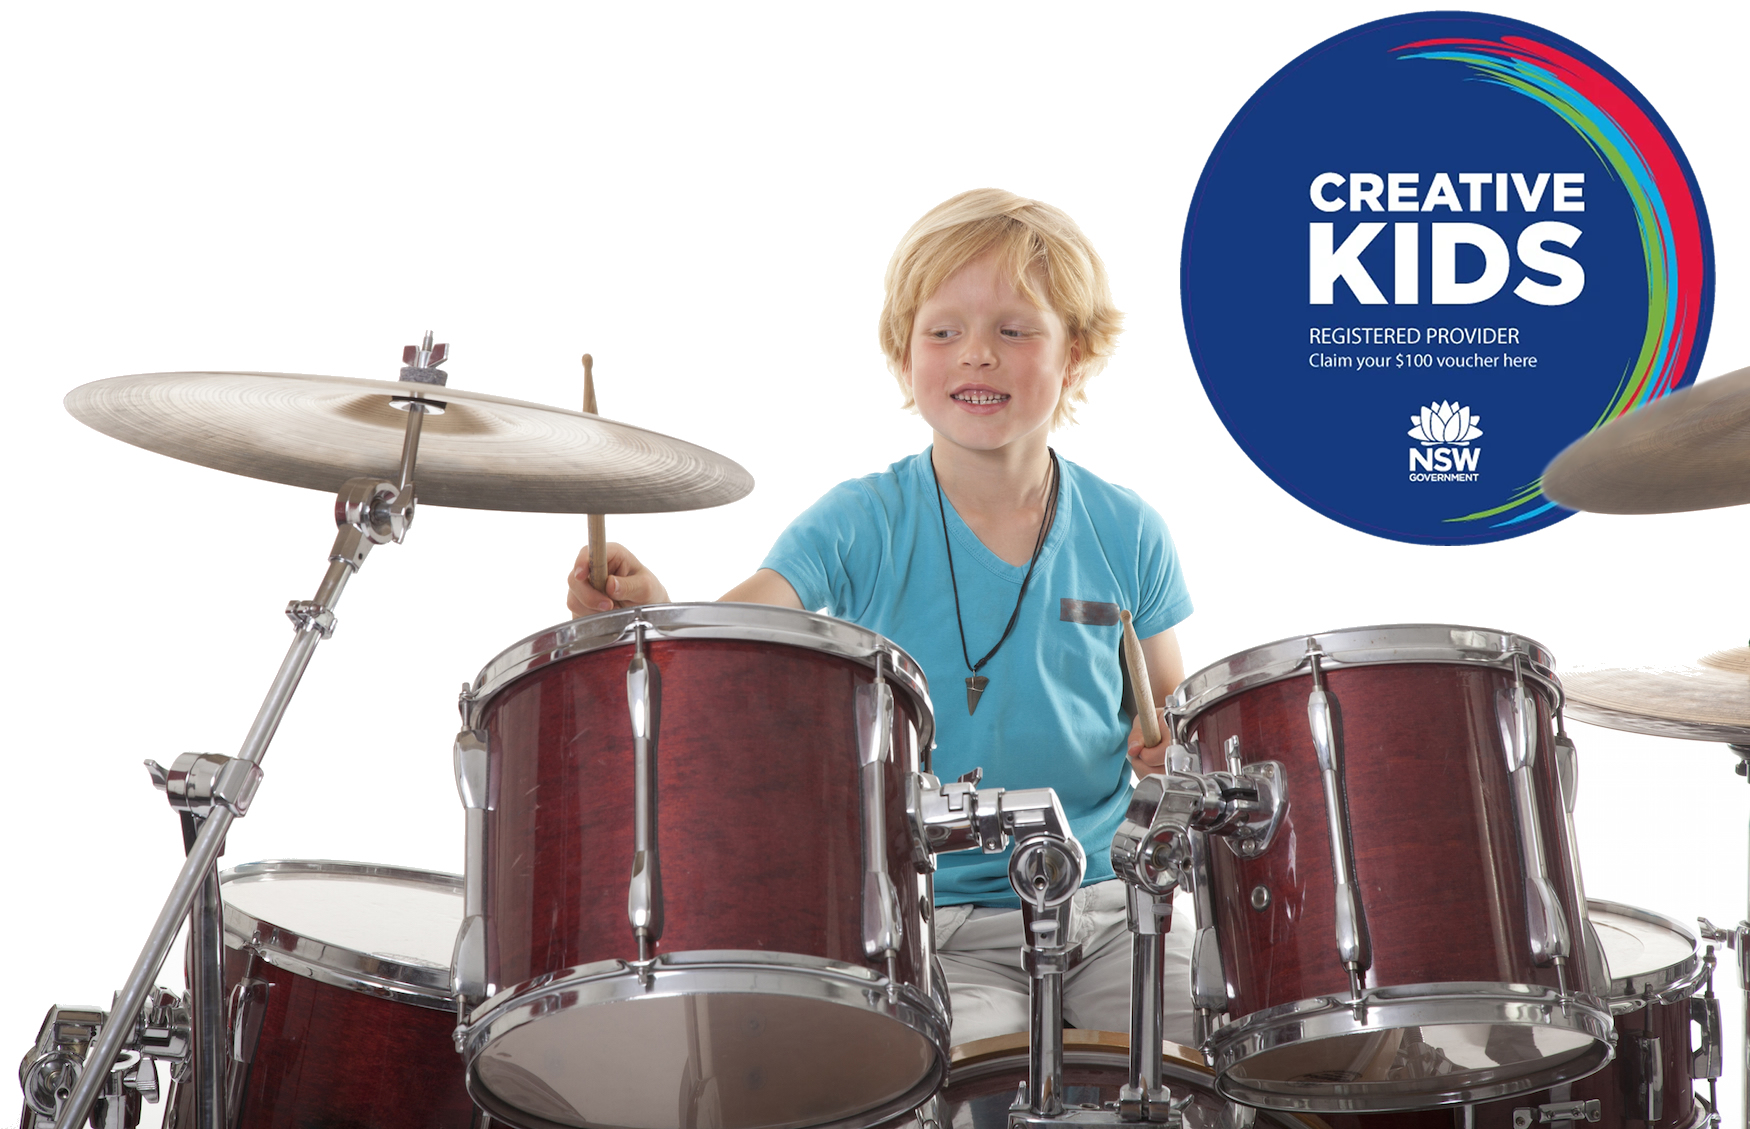 kids drum classes near me